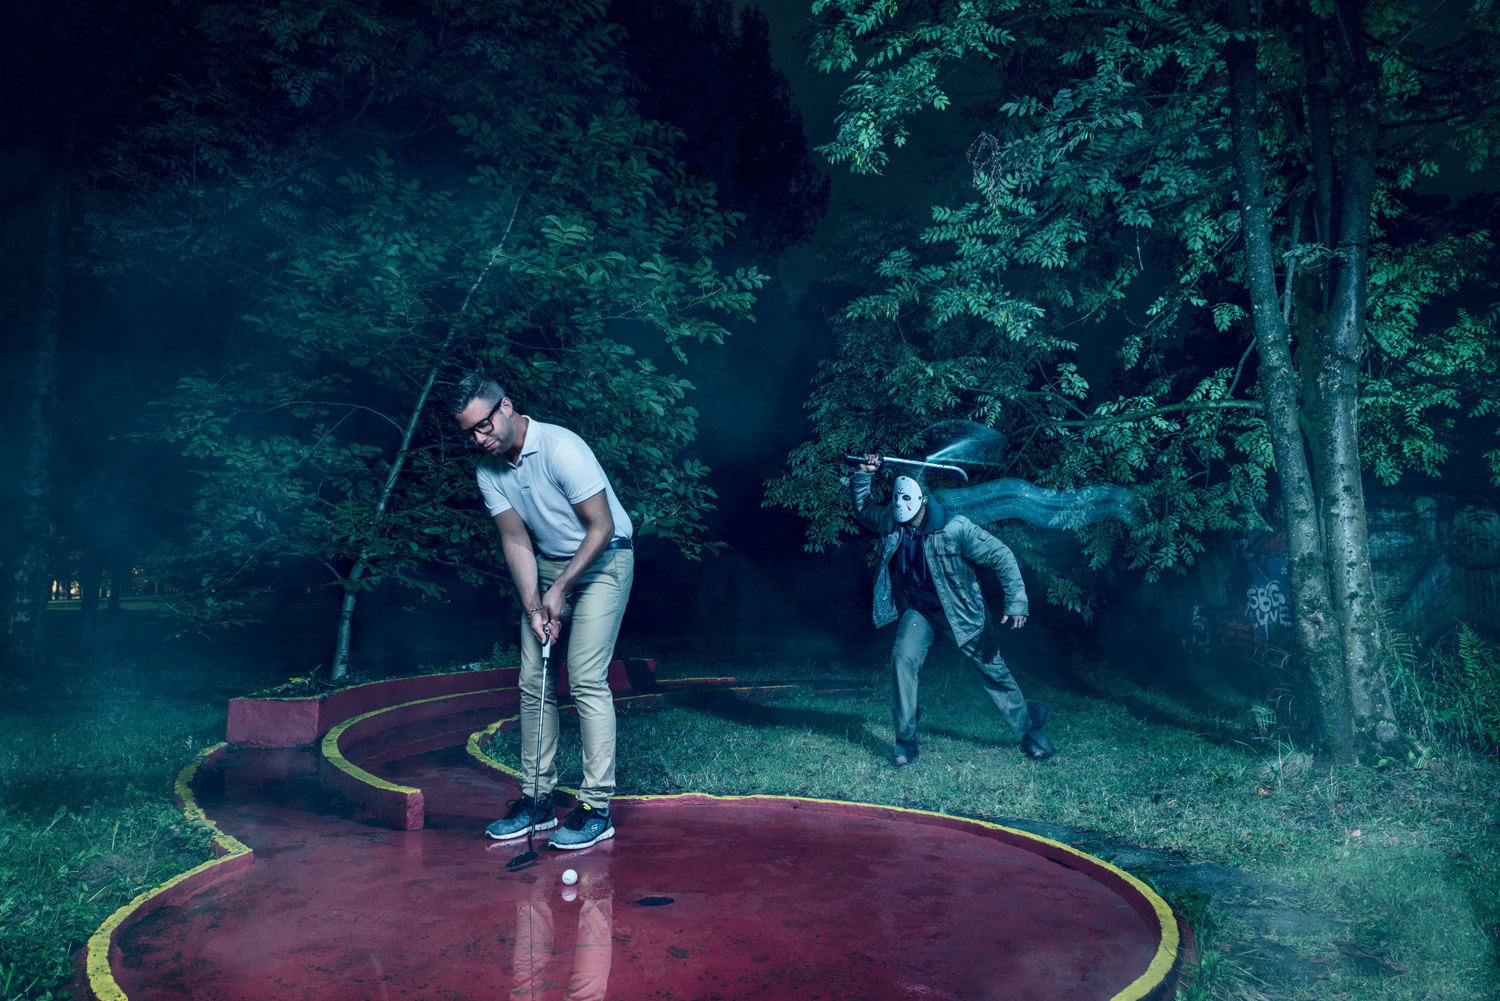 Golf and Horror: A Slightly Gory Friday the 13th Photo Shoot